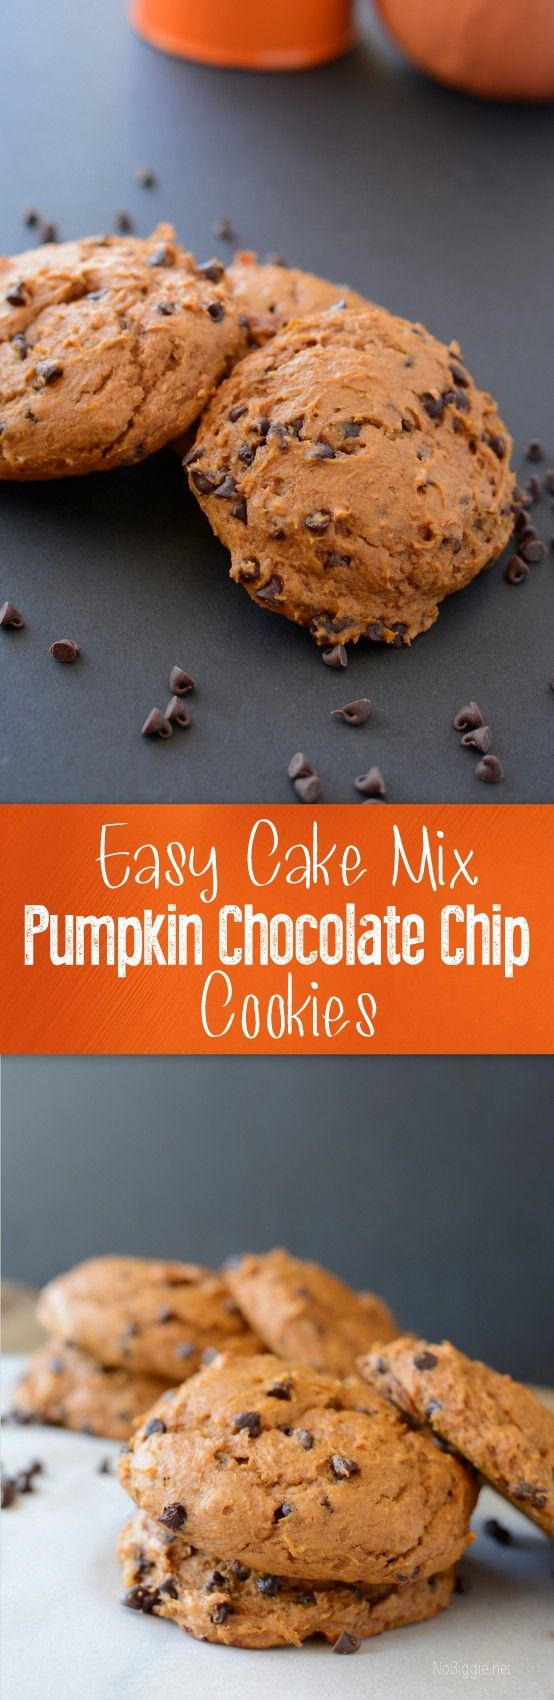 Easy cake mix pumpkin chocolate chip cookies - so easy and so good | recipe on NoBiggie.net